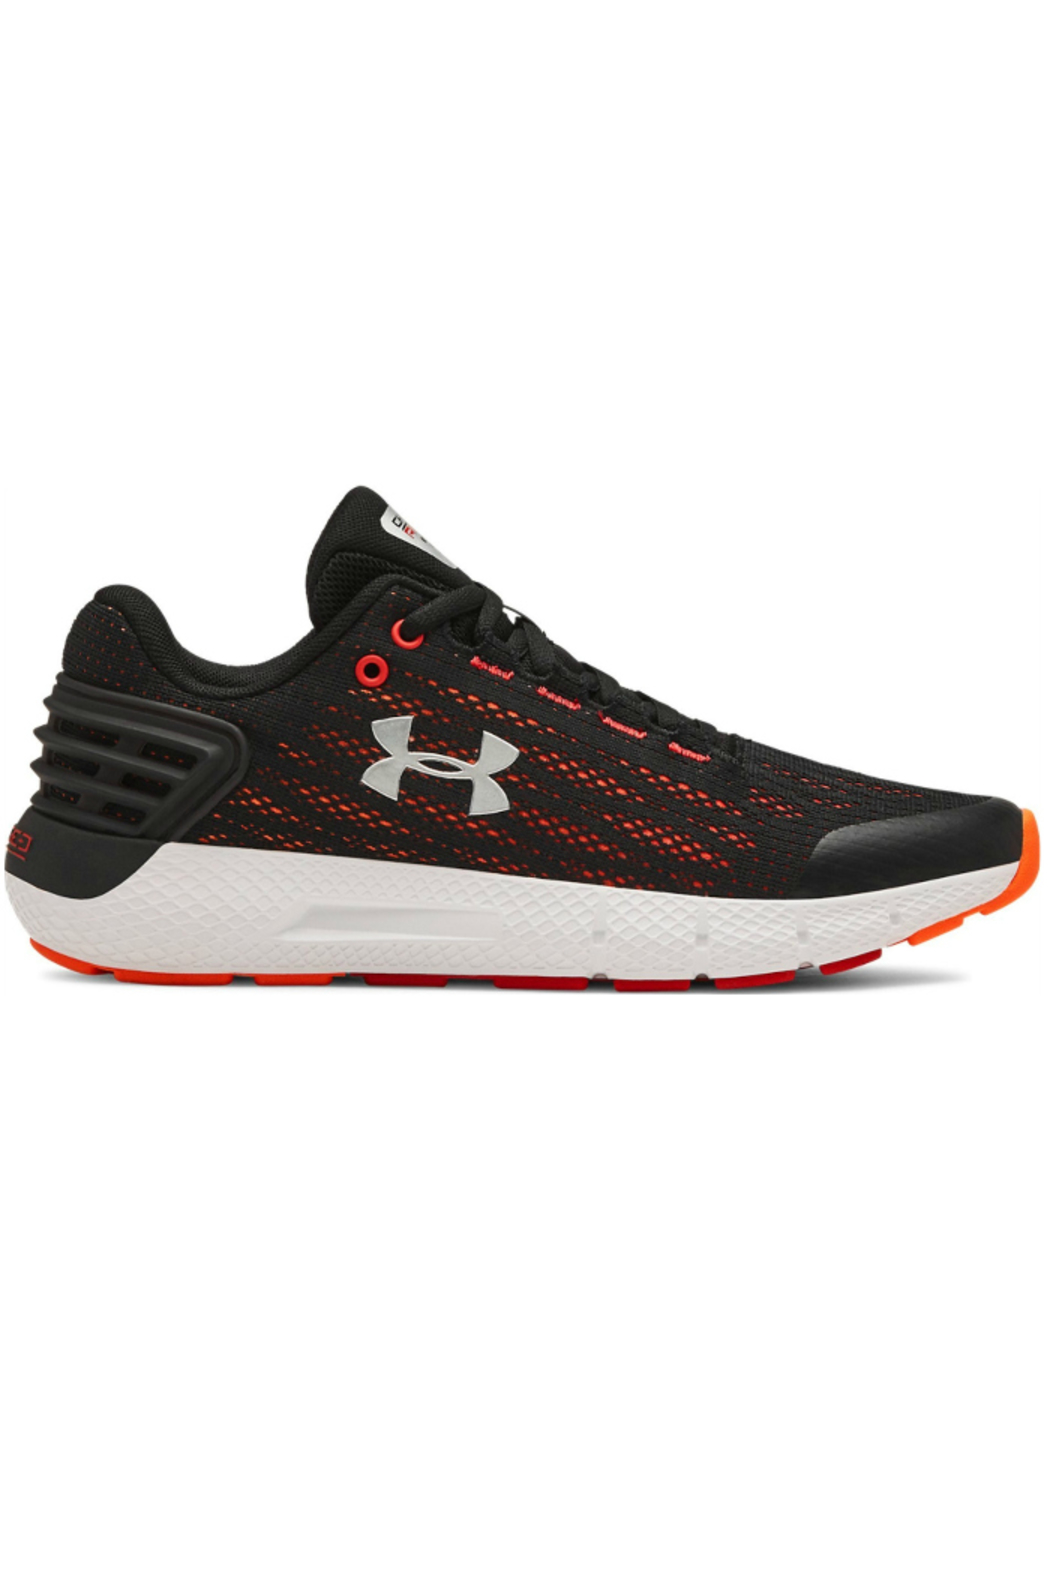 Under Armour UNDER ARMOUR CHARGED ROGUE - Front Full Image